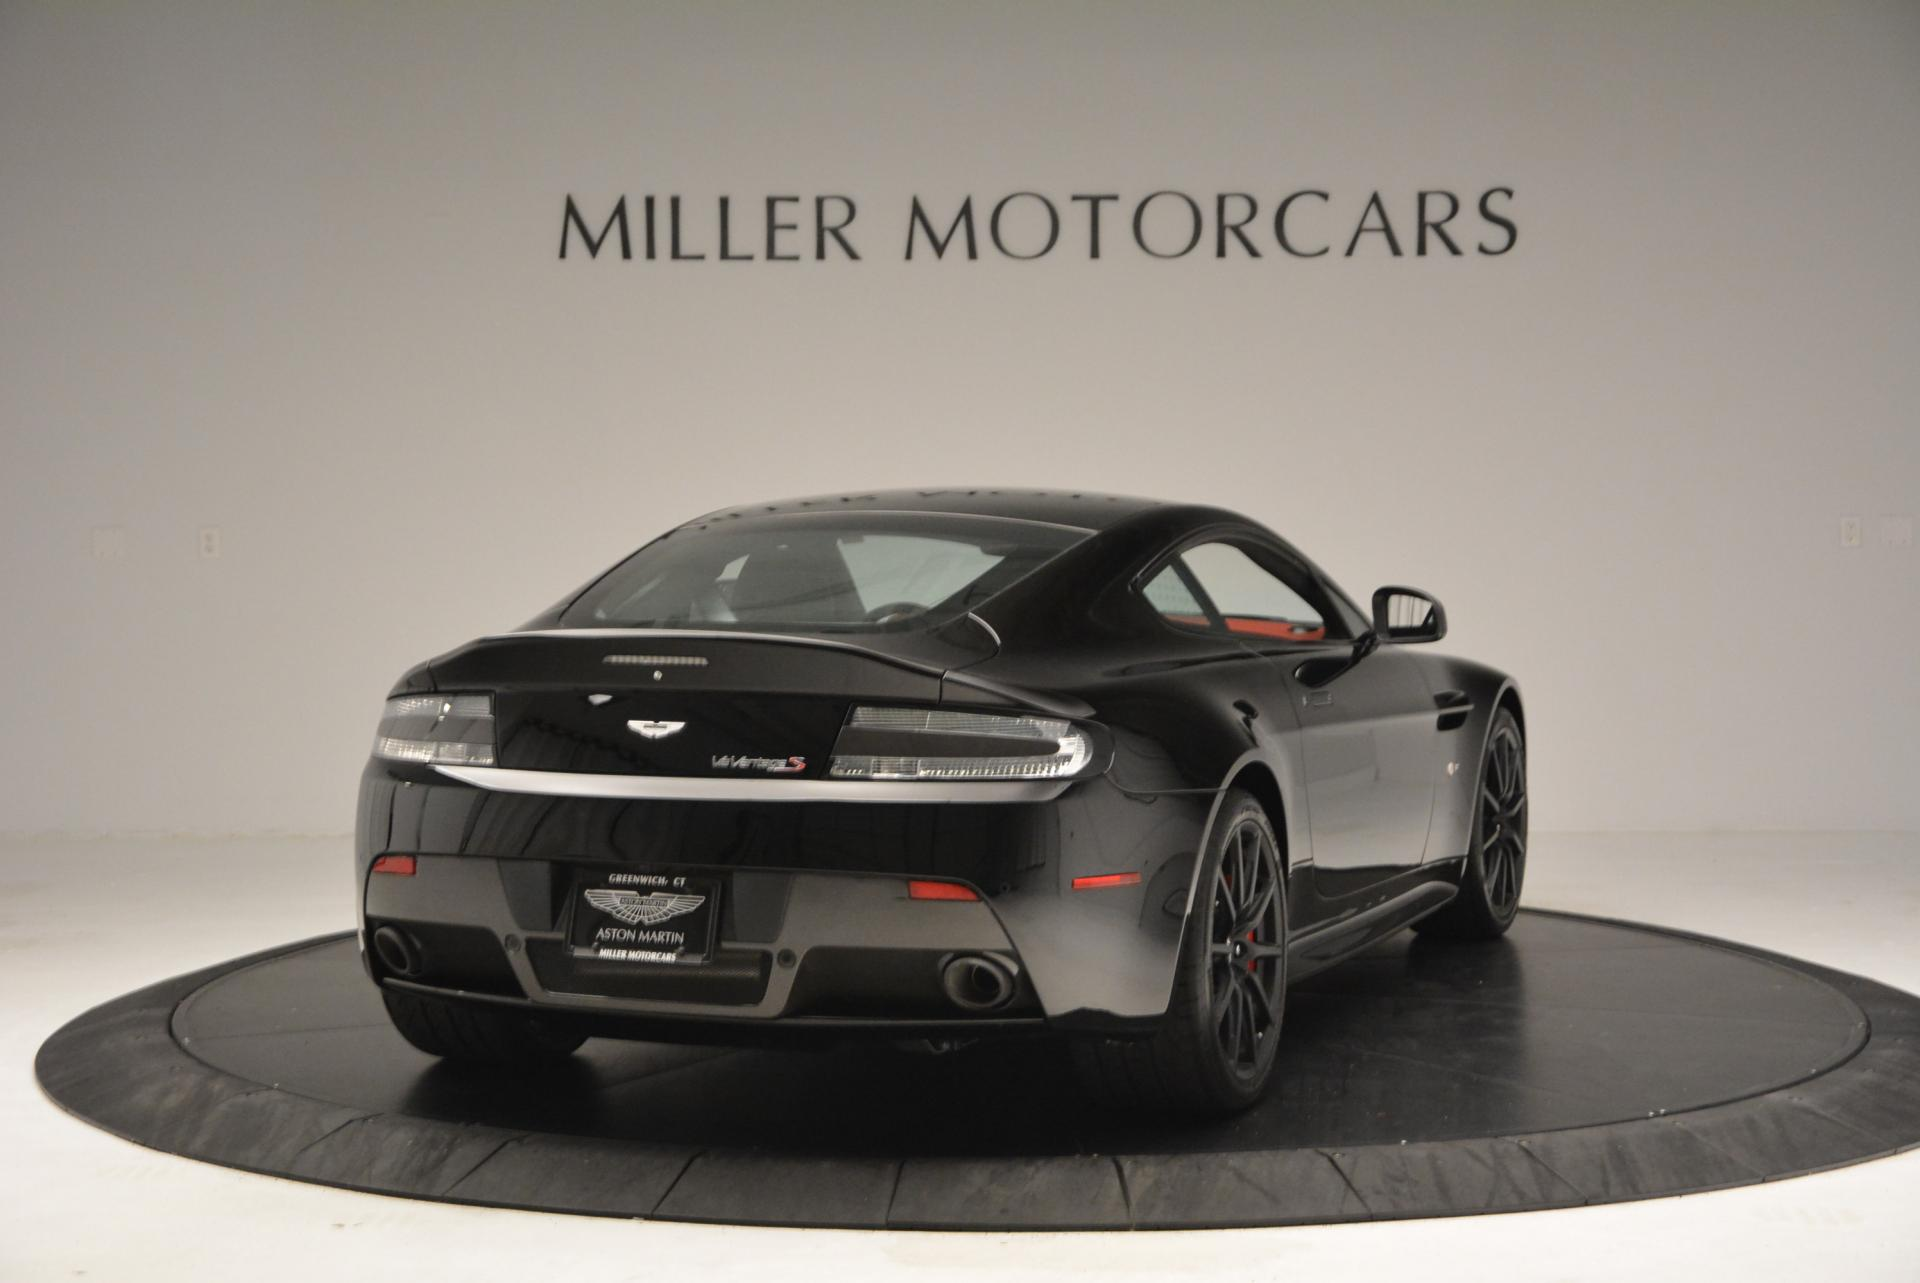 New 2015 Aston Martin V12 Vantage S  For Sale In Westport, CT 103_p7